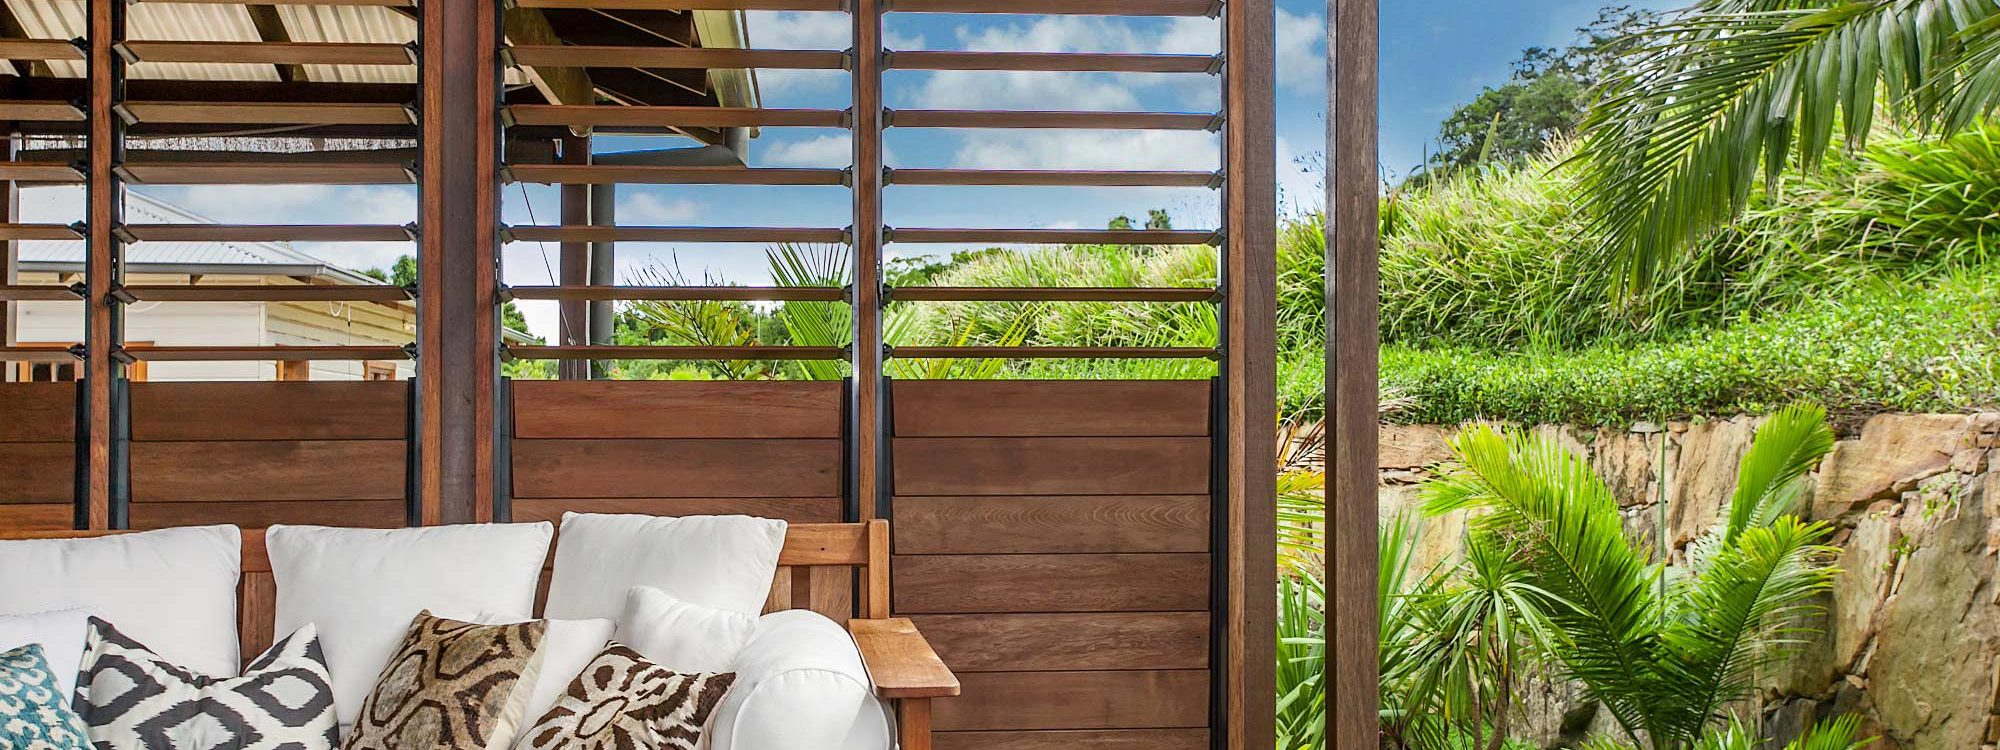 Callistemon View - Byron Bay Hinterland - Federal - Outdoor seating tropical